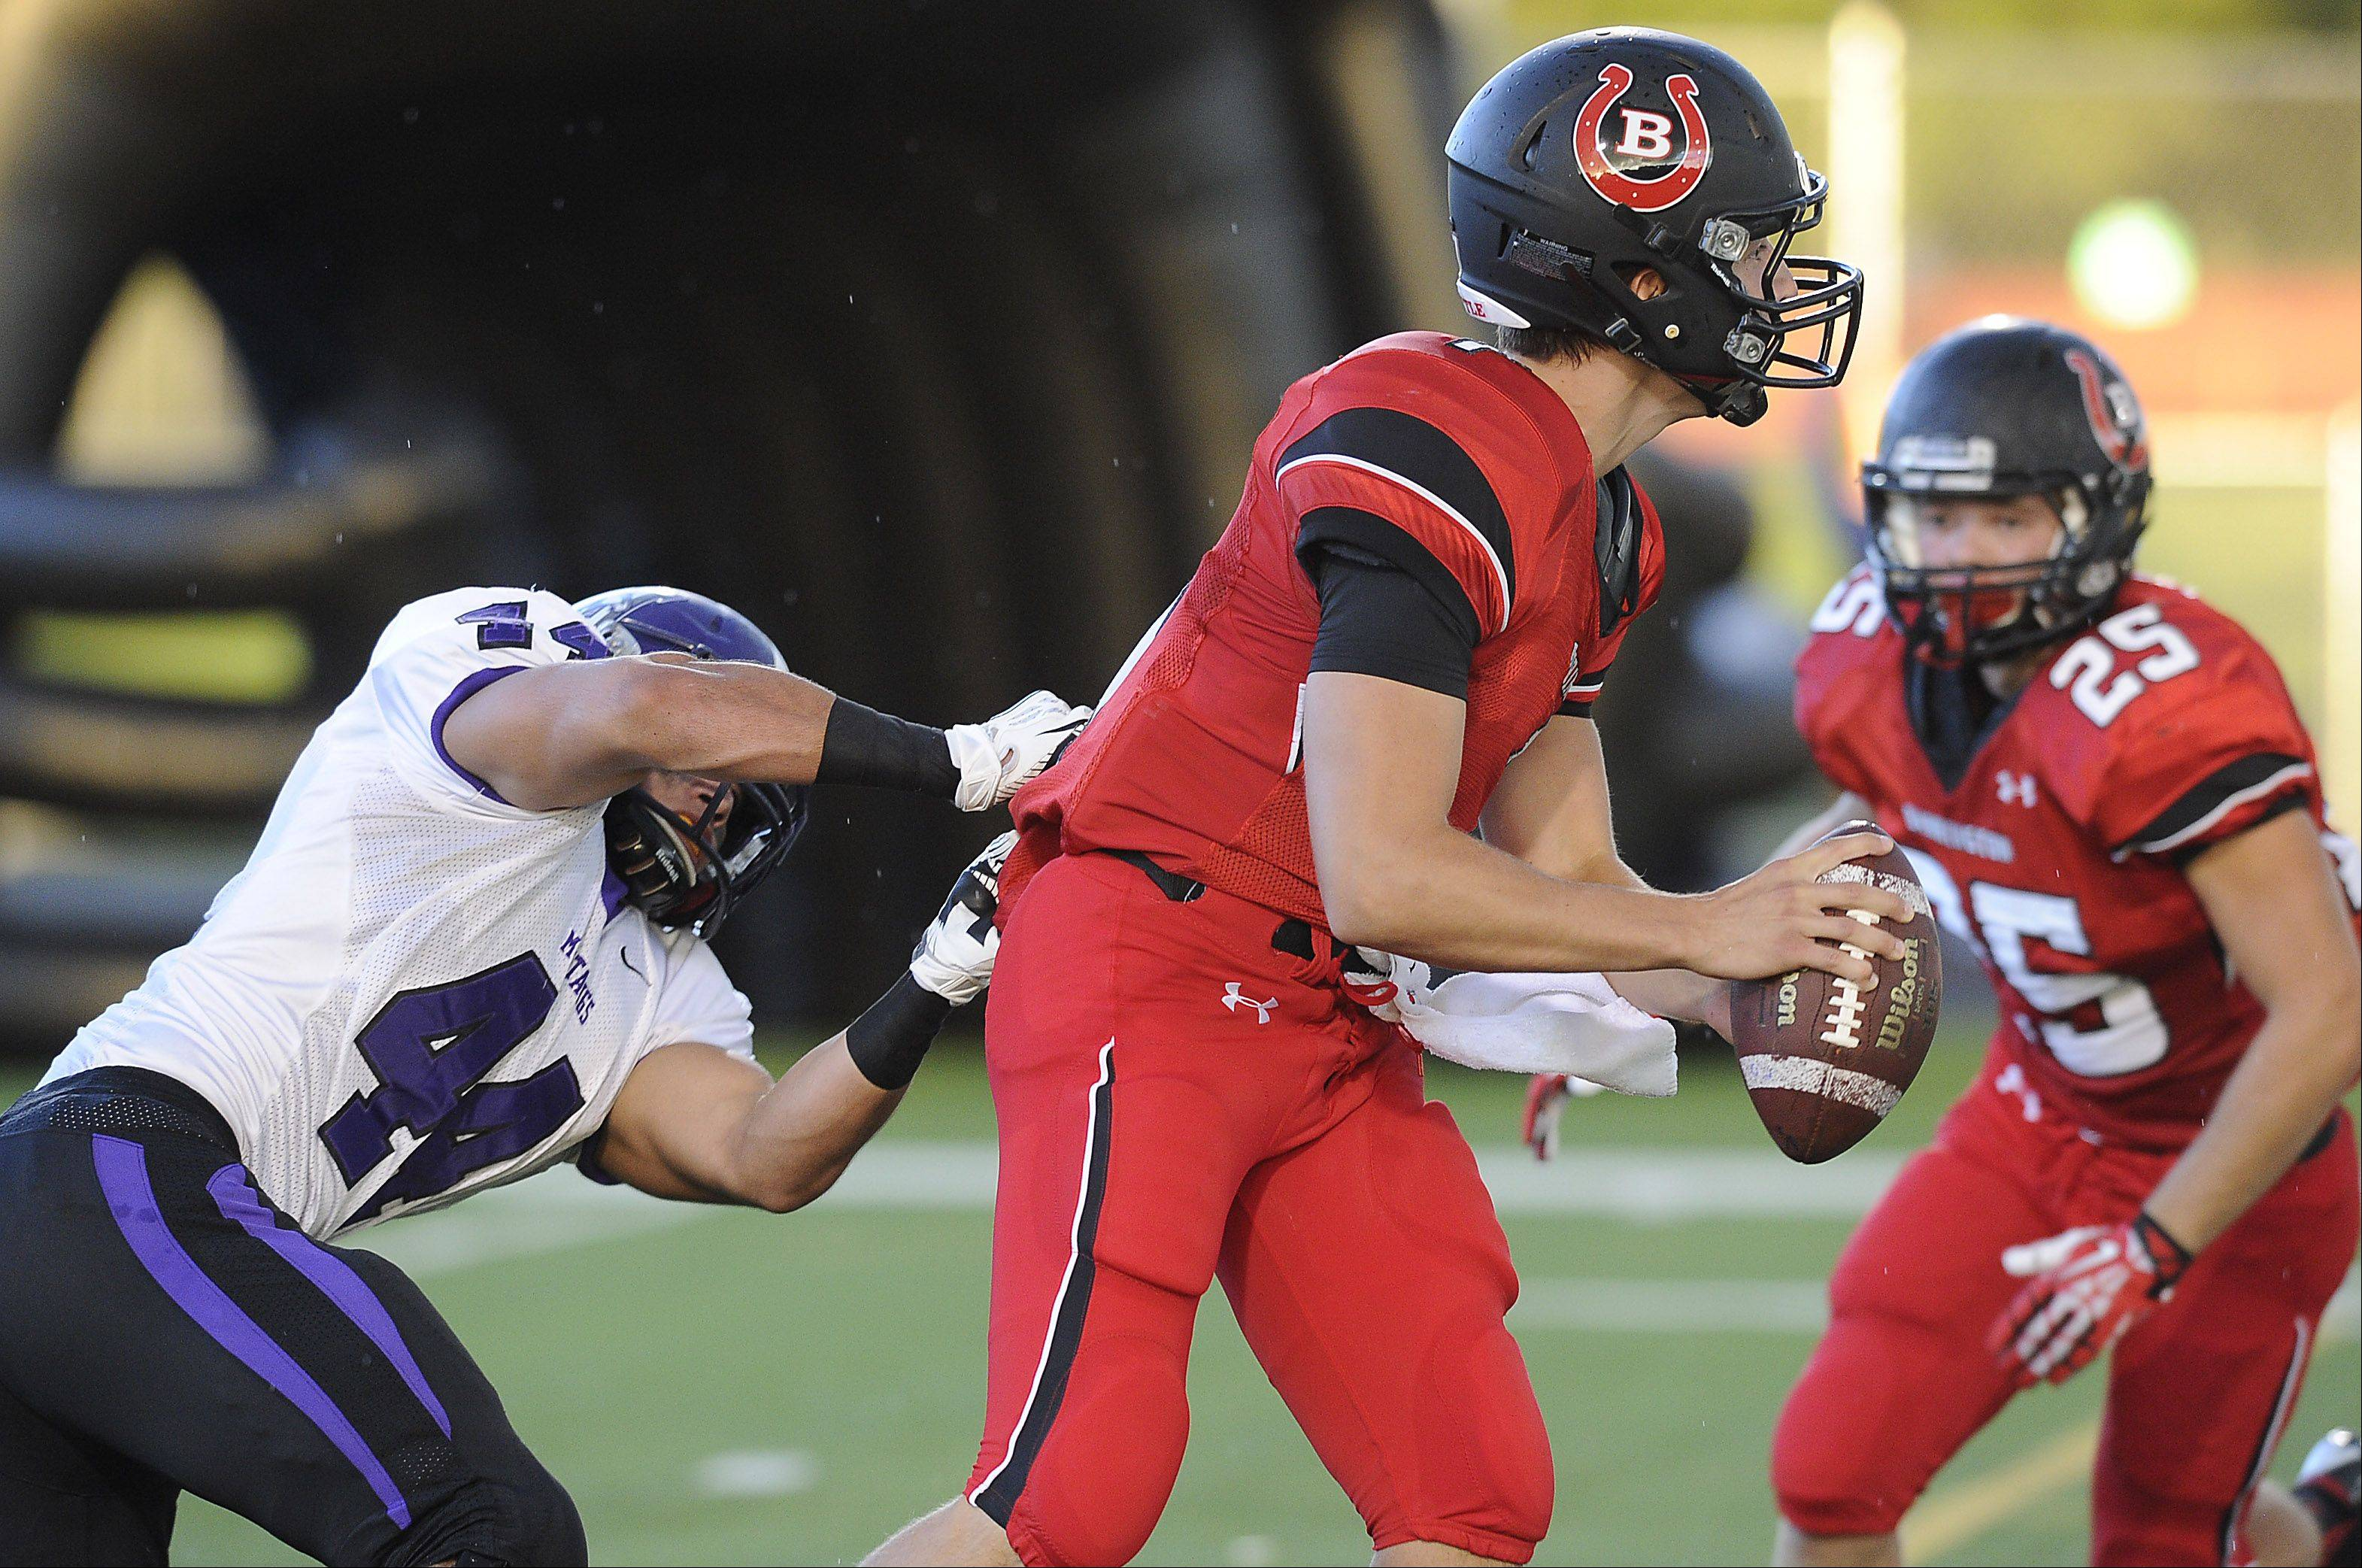 Rolling Meadows Eddie Cardenas sacks Barrington quarterback Daniel Kubiuk in the first quarter Thursday at Barrington.